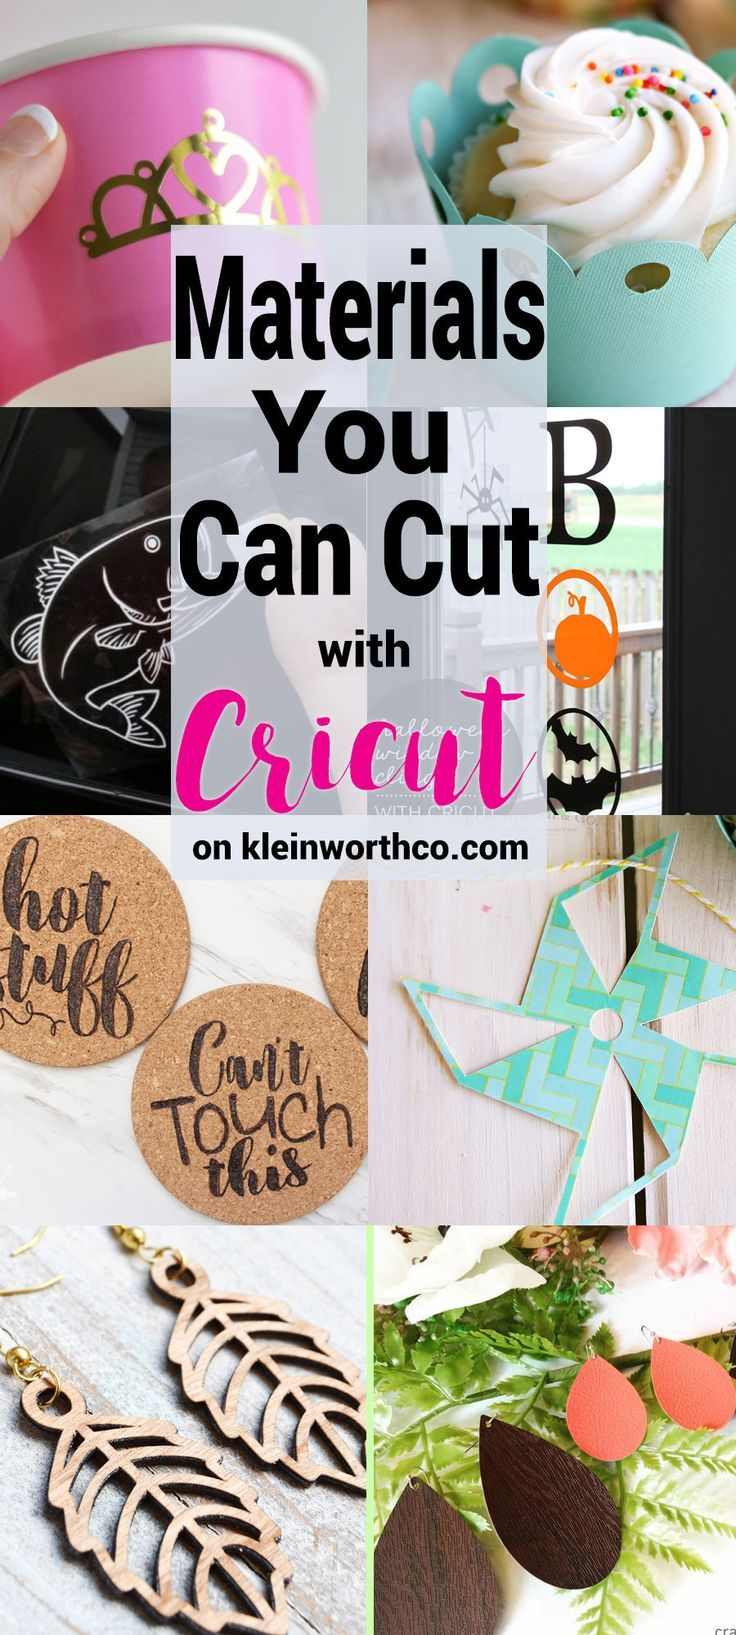 Wondering what Materials You Can Cut with Cricut? Check out all these super awesome projects made with so many different materials & cut with Cricut.